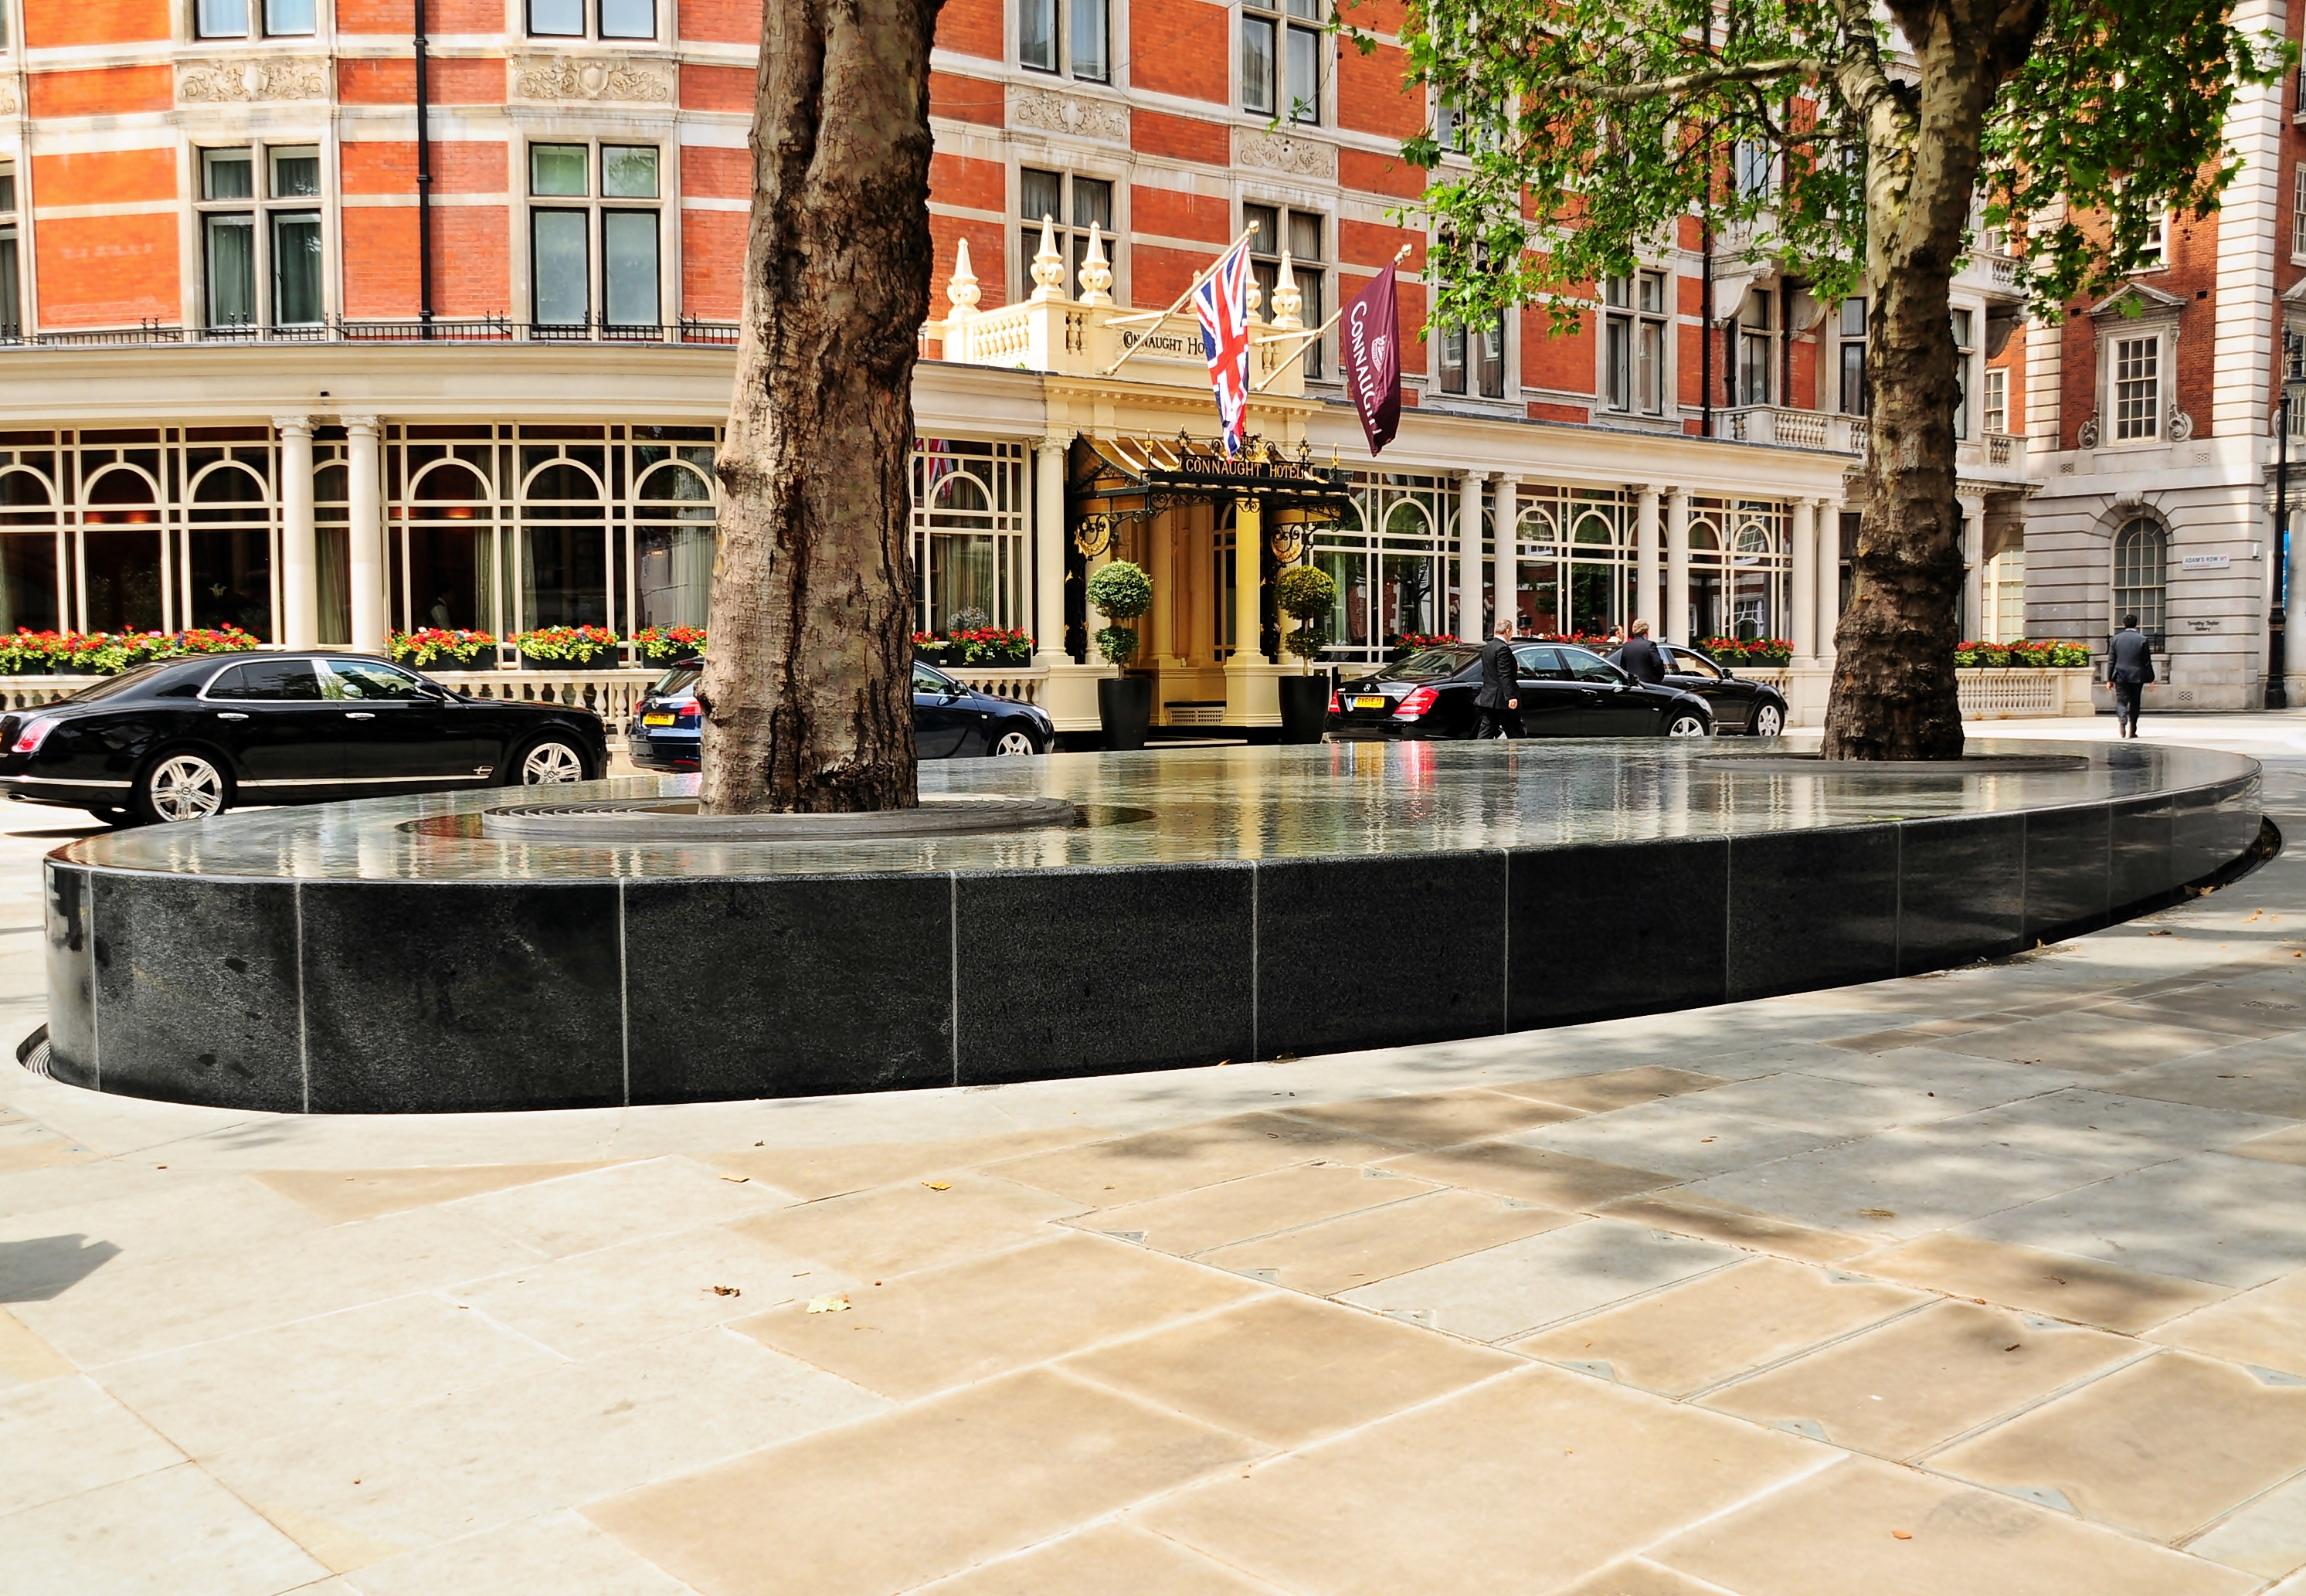 FileWater Feature Silence Mayfair London.JPG - Wikimedia Commons